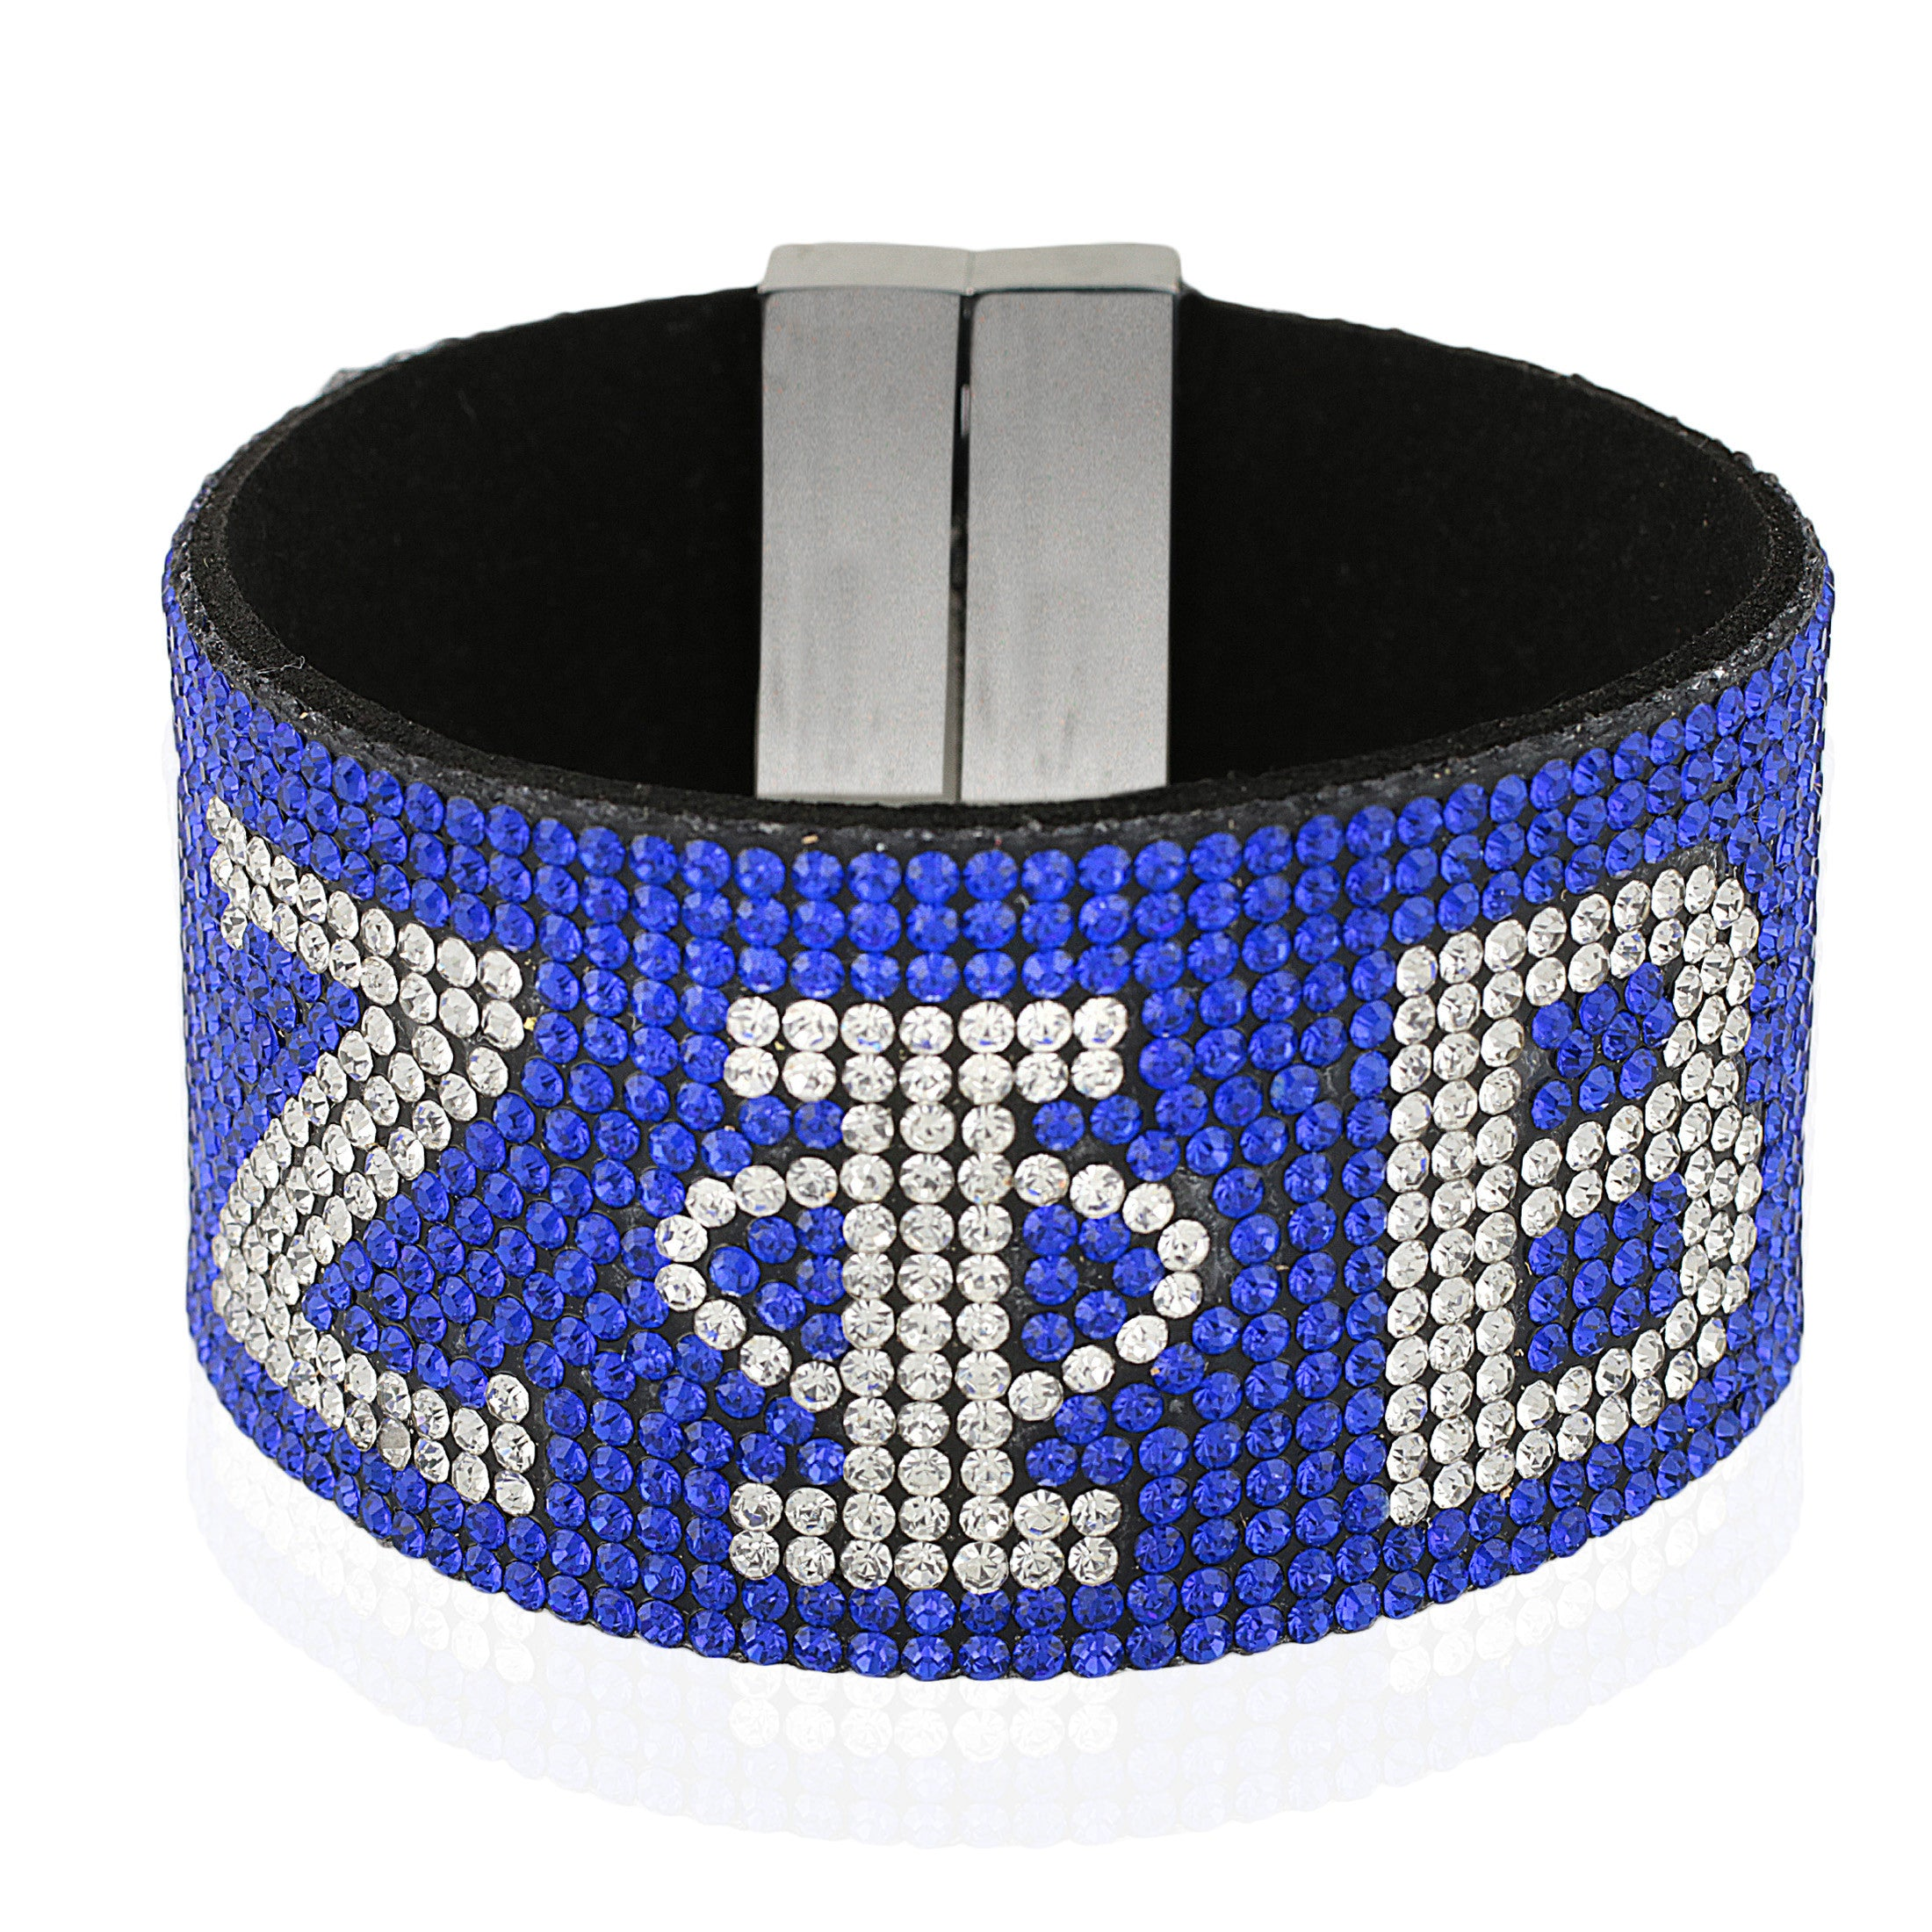 Zeta Phi Beta Bling Bracelet with Magnetic Clasp (Blue)